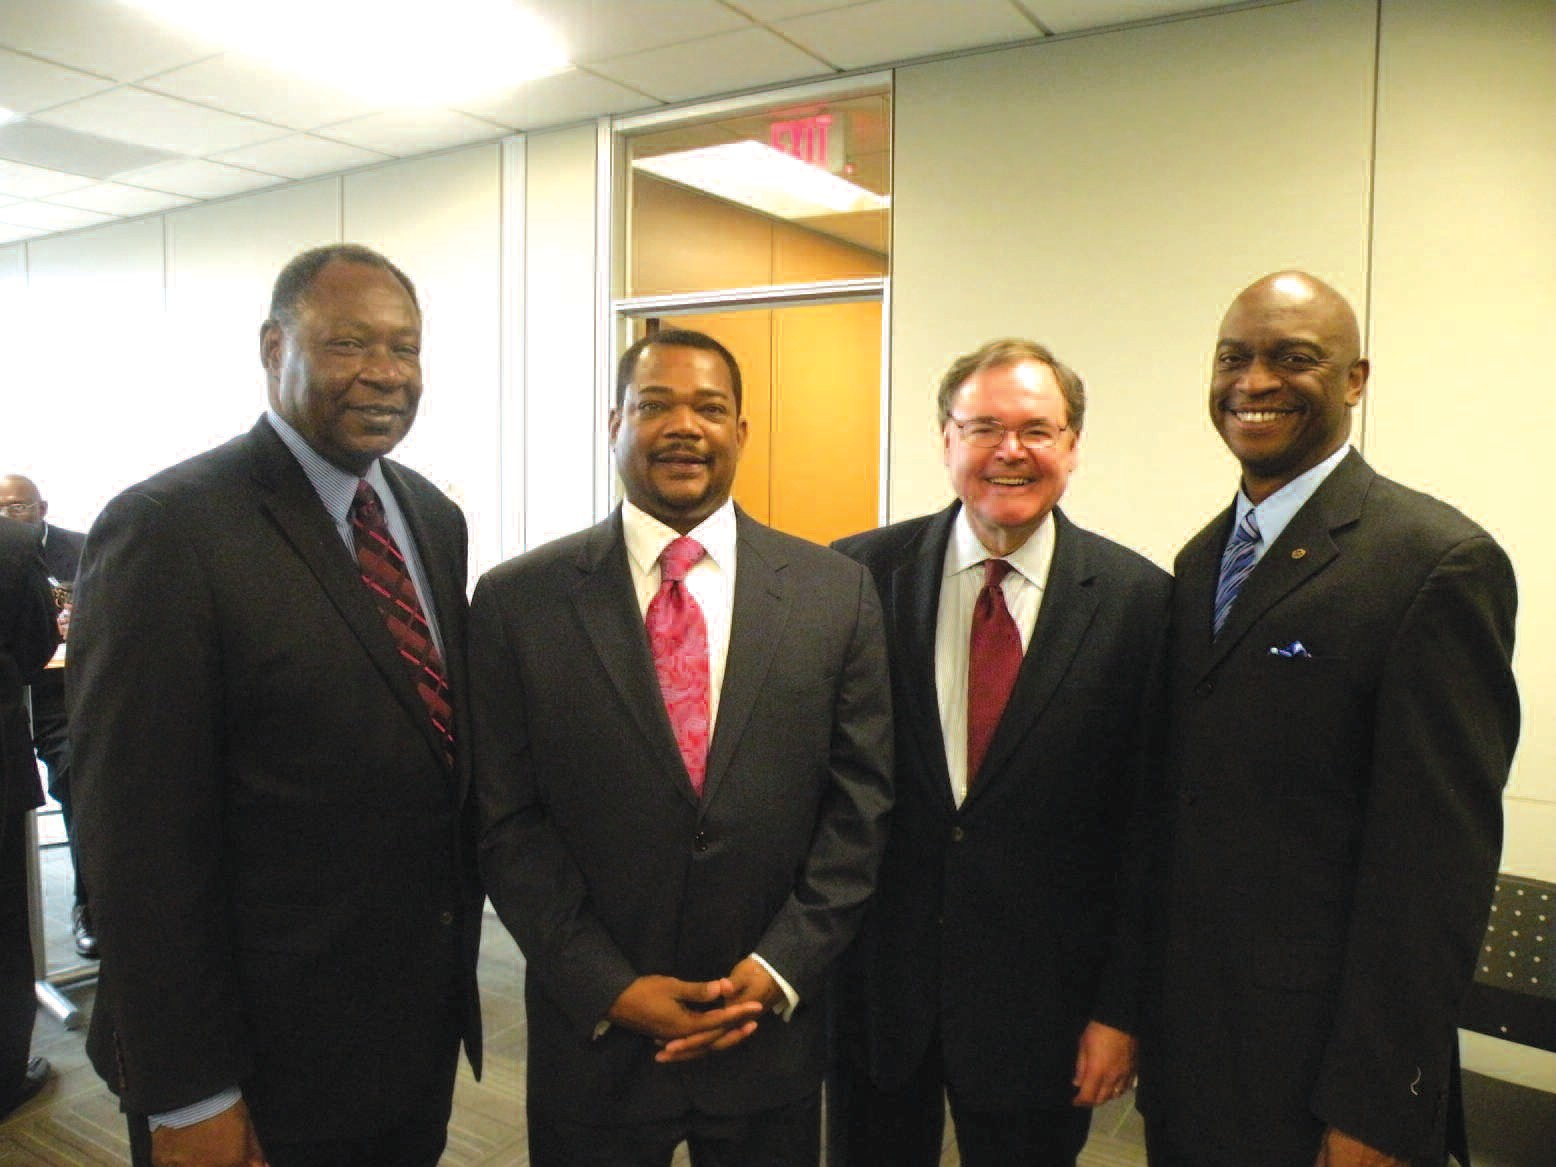 Pictured left to right are: Robert James, Ira Snell, Brooks Stillwell and Rev. Thurmond N. Tillman